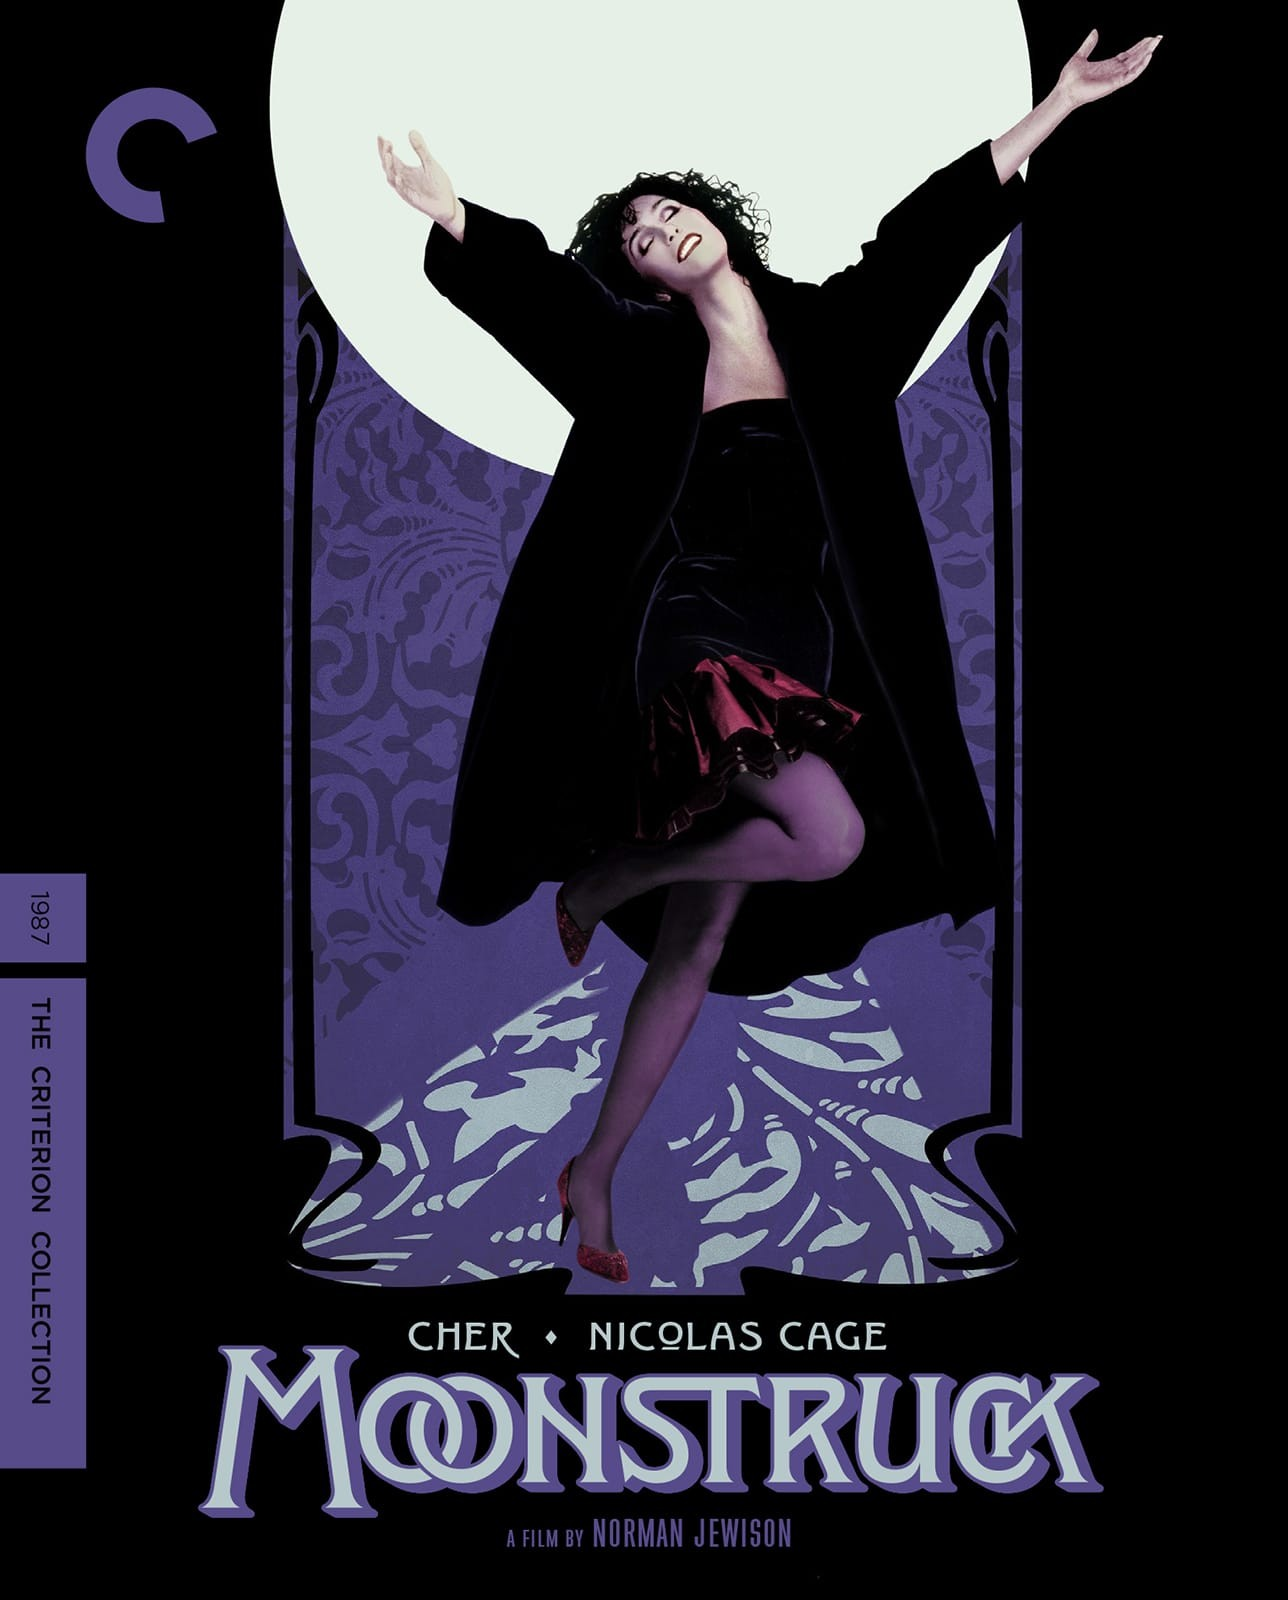 Moonstruck (1987) | The Criterion Collection